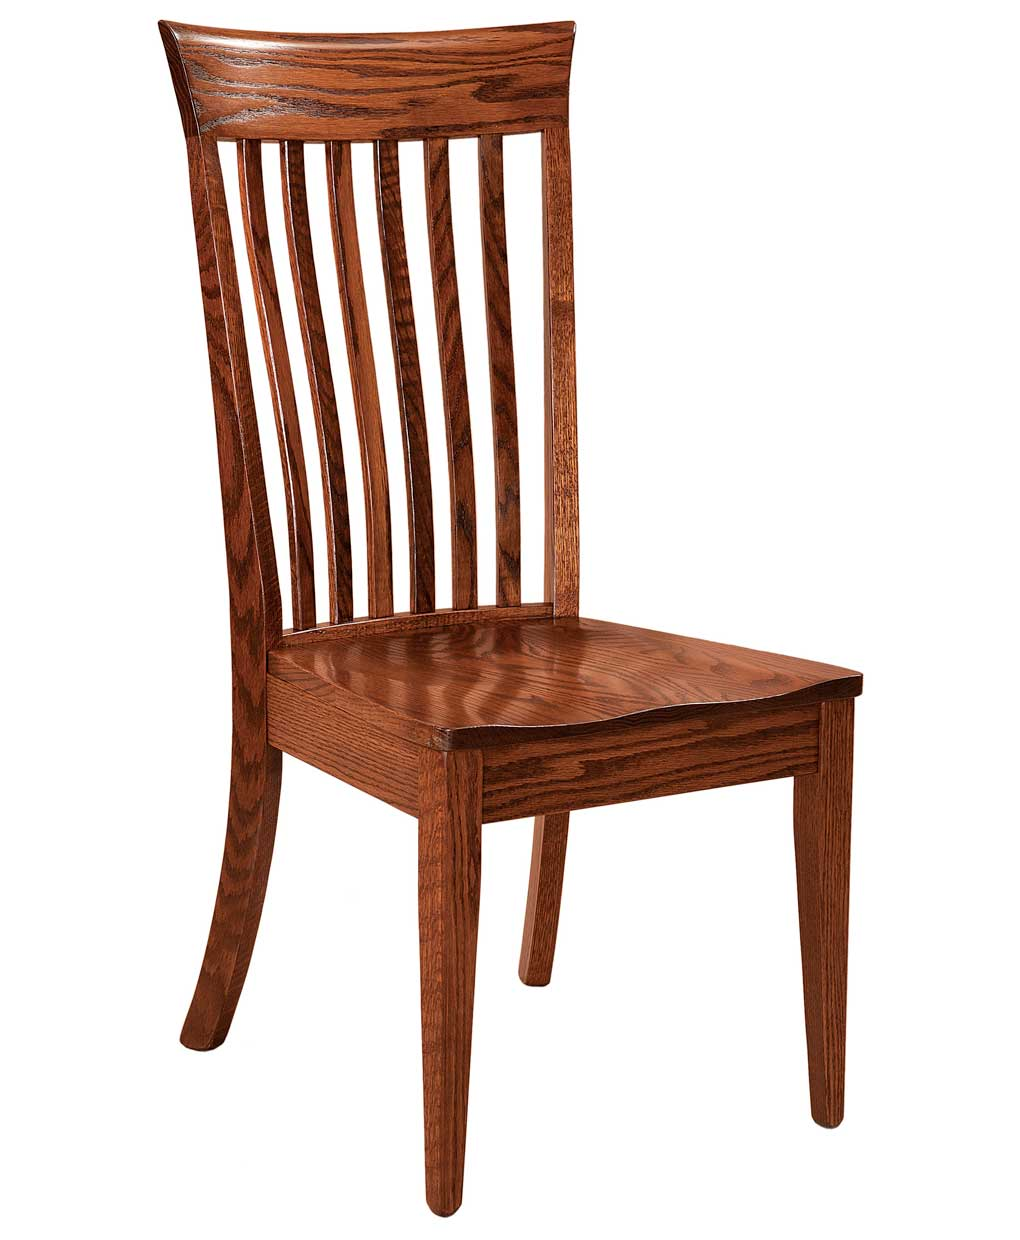 Beckley Dining Chair Amish Direct Furniture : BeckleyDiningChair from amishdirectfurniture.com size 1020 x 1240 jpeg 73kB